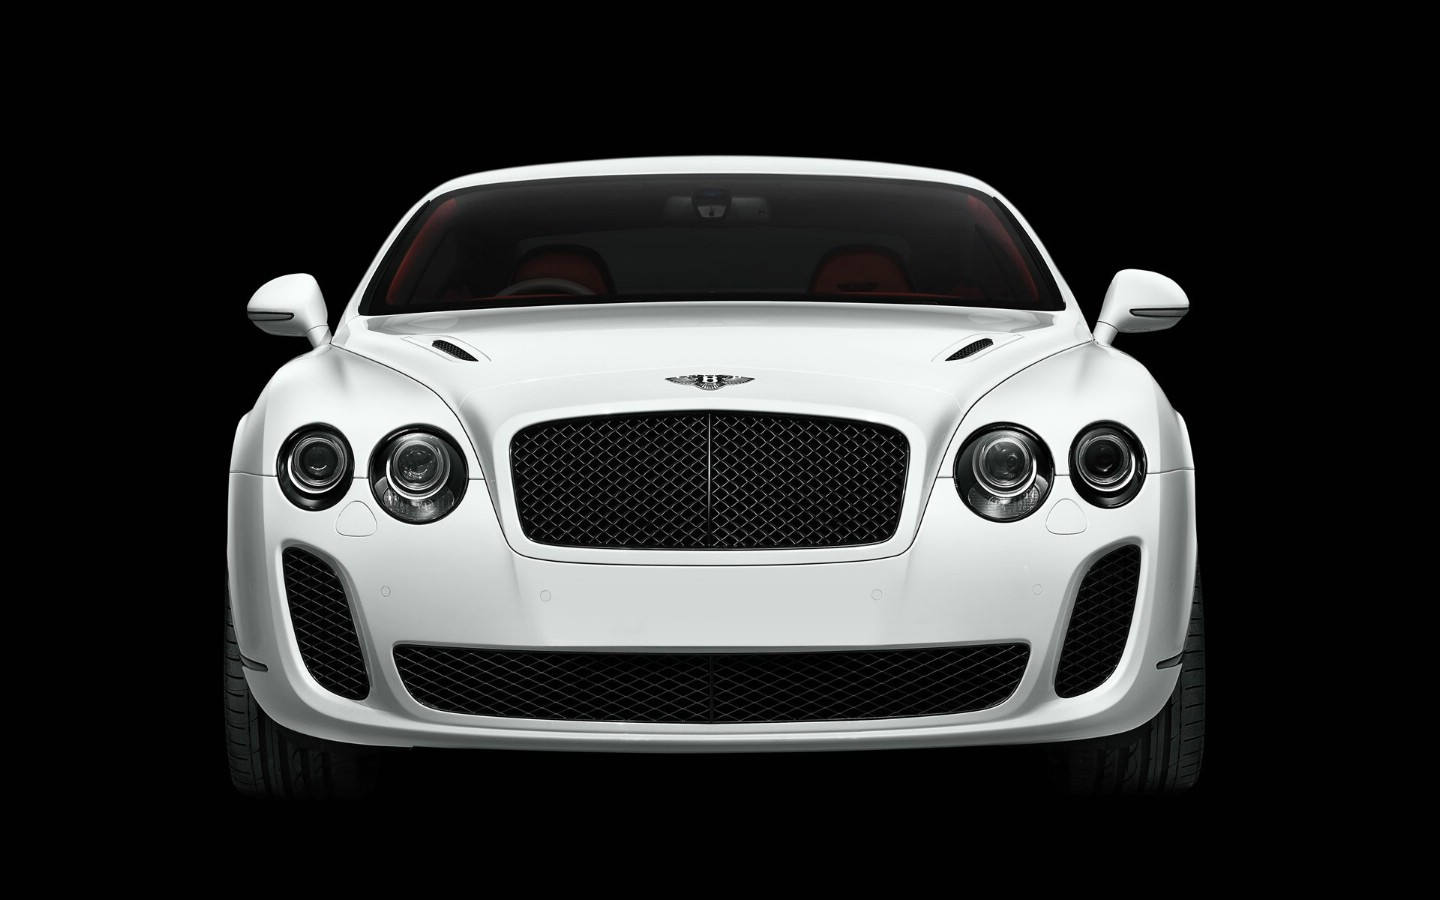 2007 bentley continental gt with Down 424947 10 on 1953 Bentley R Type Continental in addition Tapety na pulpit audi tt rs 10 22530 102 likewise 2018 Porsche 911 Gt3 Rs Leaked in addition Down 424947 10 moreover File 2003 2007 bentley continental  3w  gt coupe  2011 03 29.